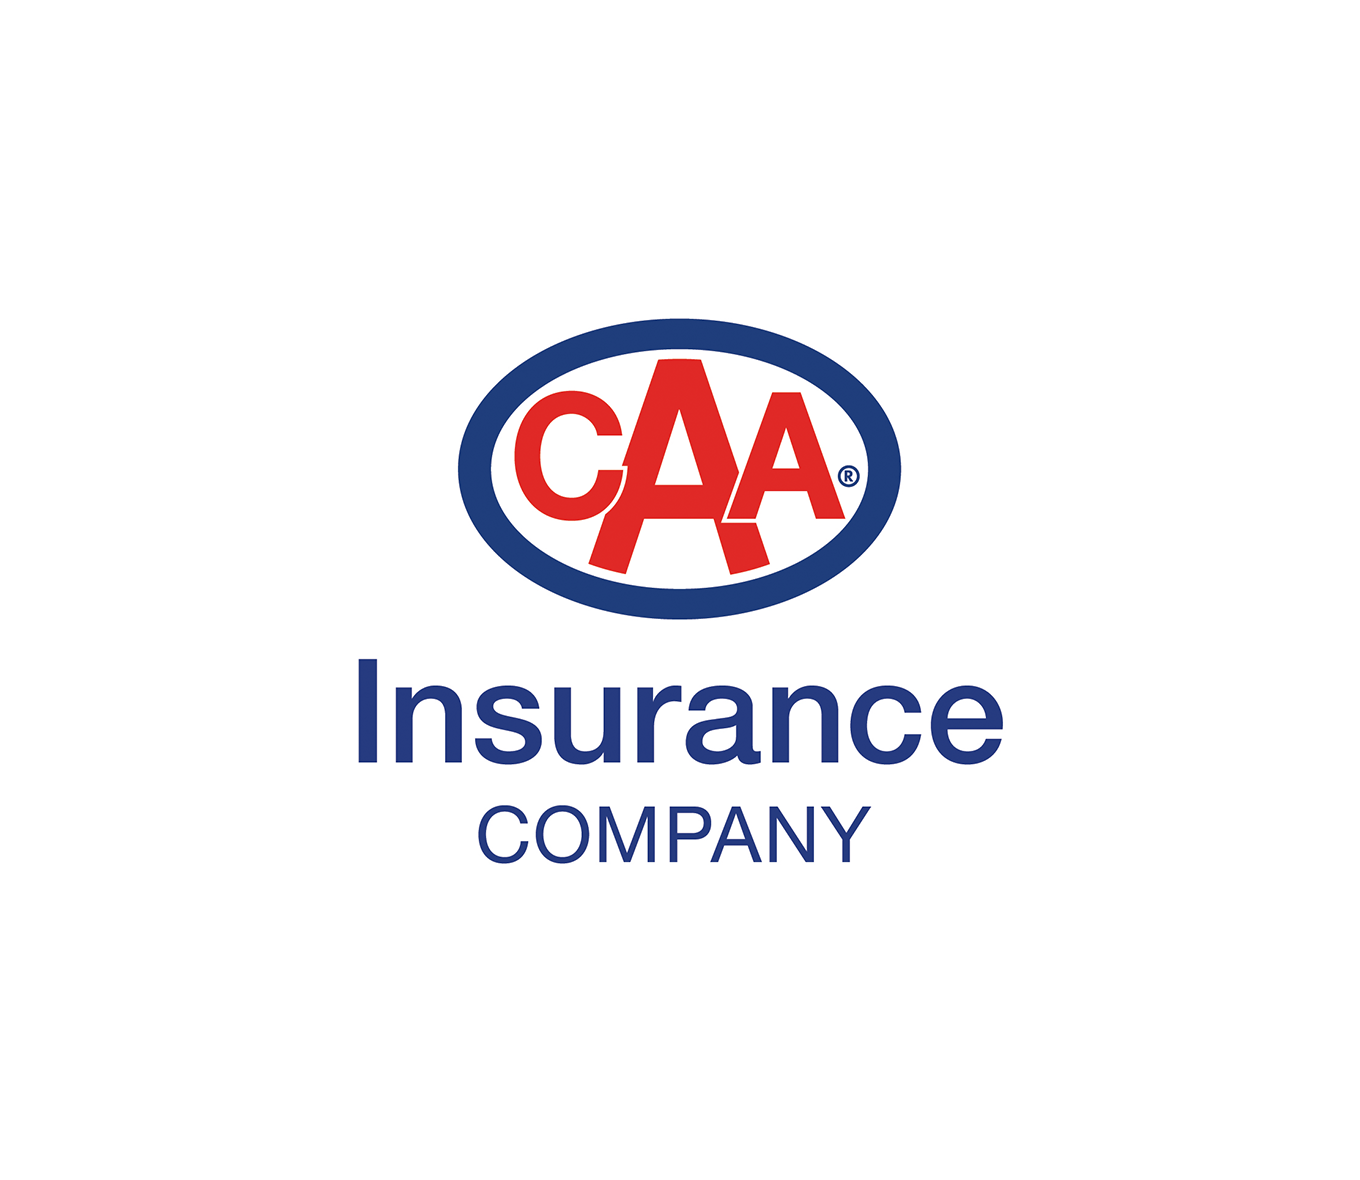 Canadian Automobile Association Insurance Company